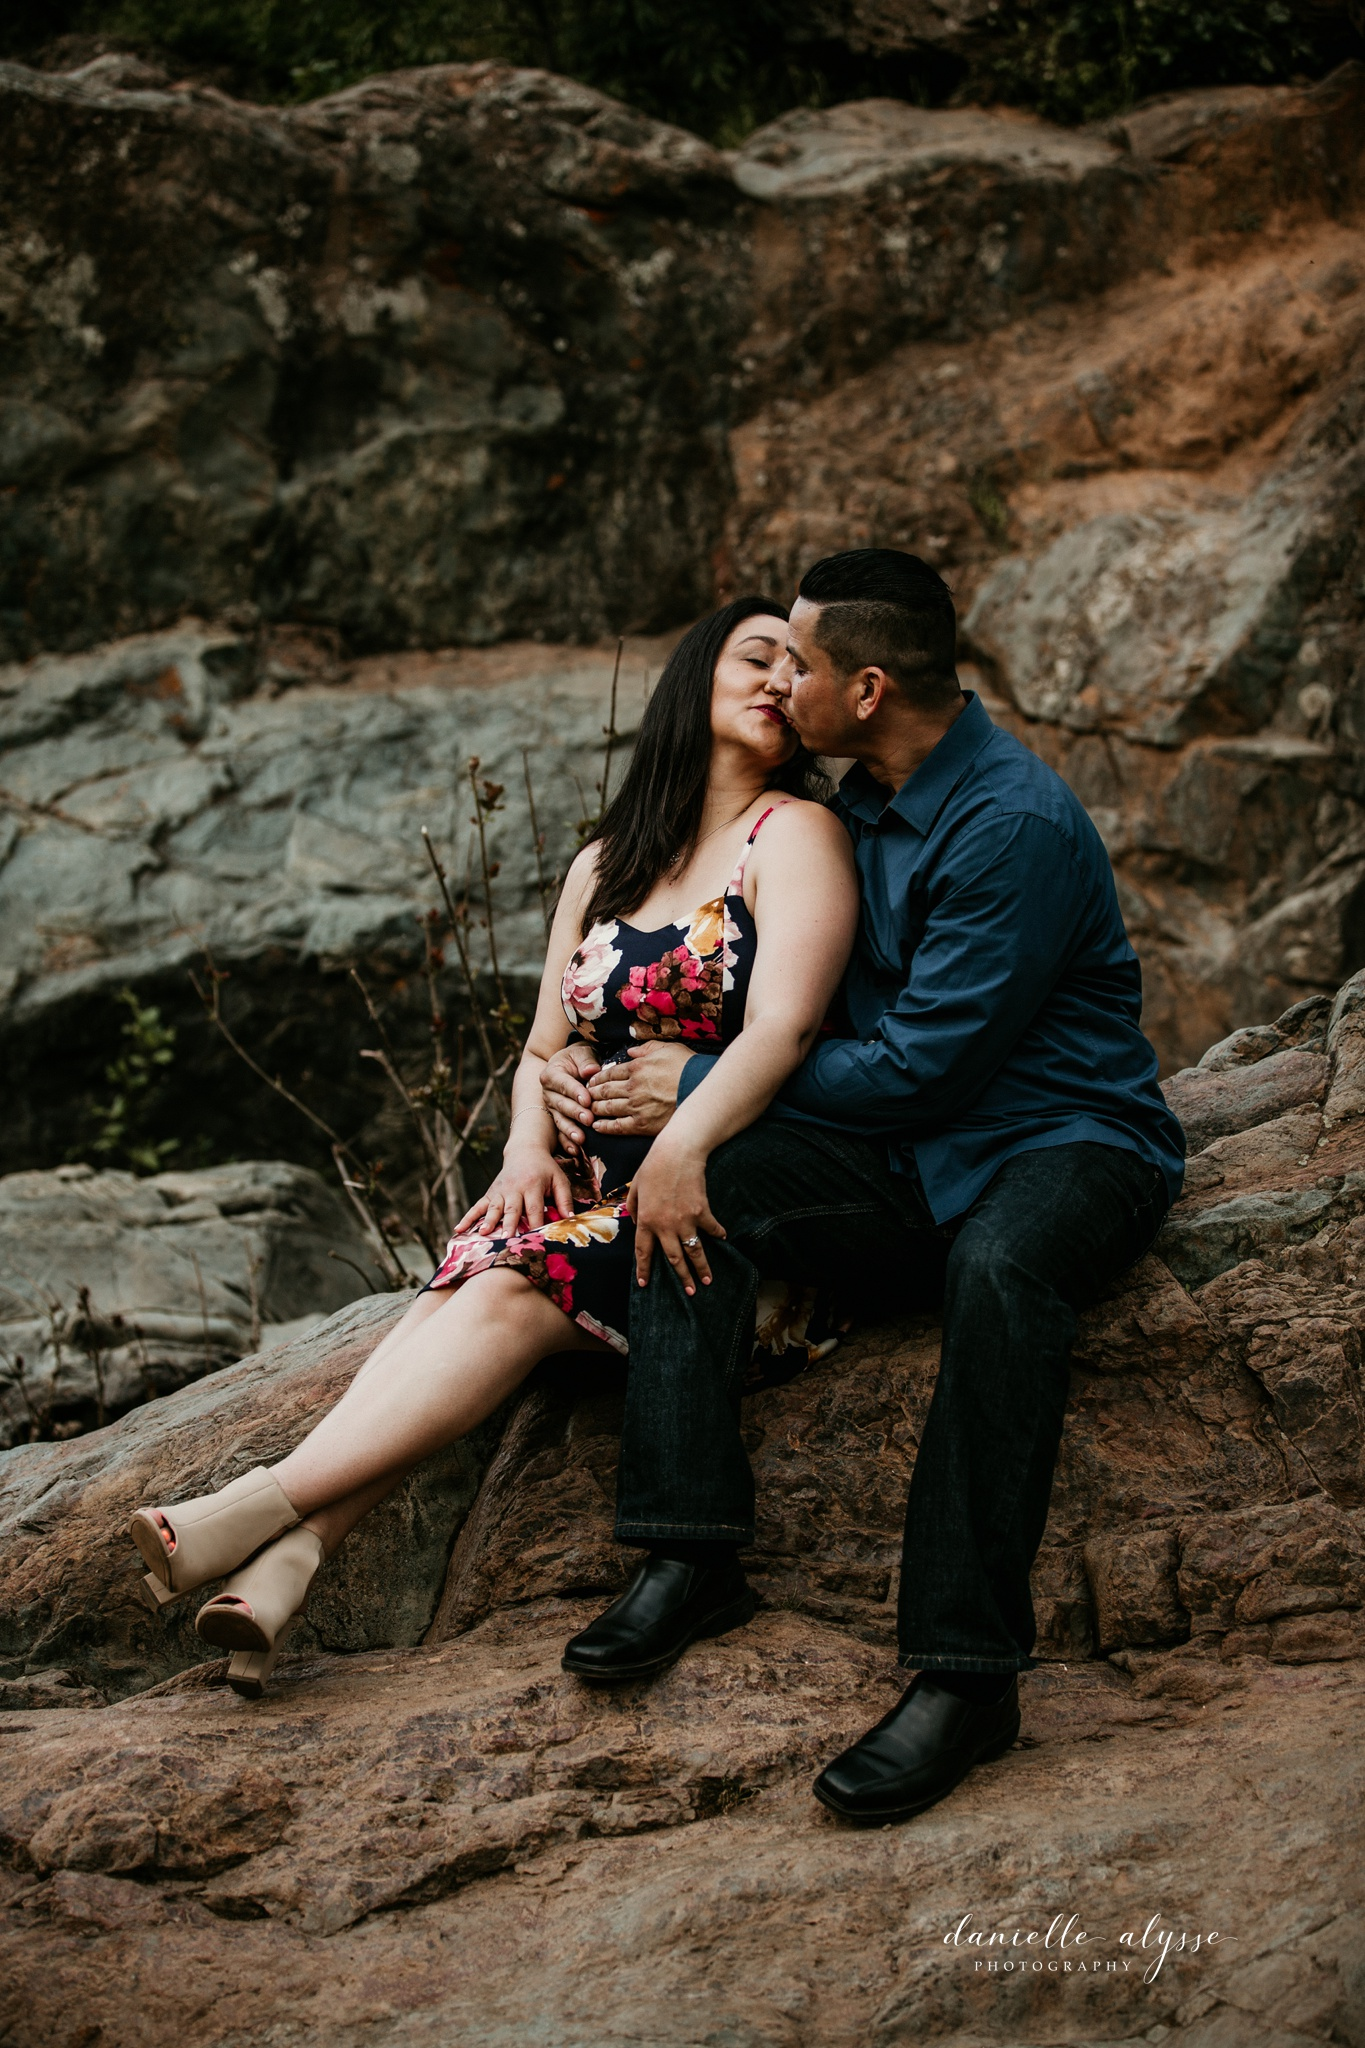 180425_engagement_monica_auburn_water_falls_auburn_danielle_alysse_photography_sacramento_photographer_blog_47_WEB.jpg